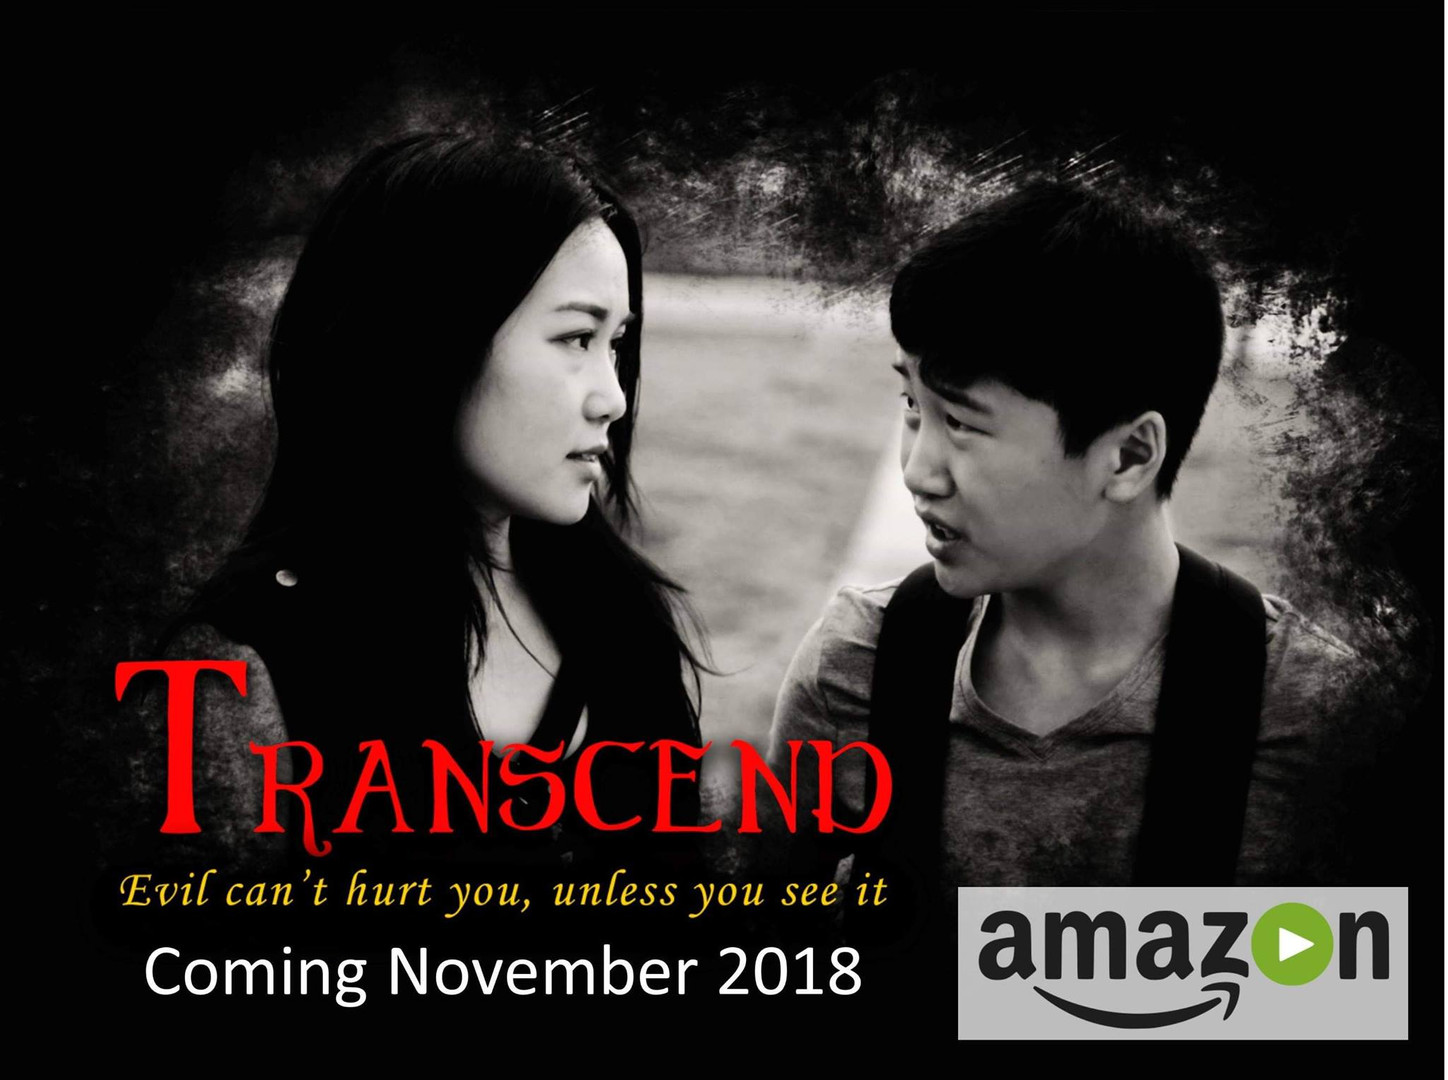 Transcend Episode 1